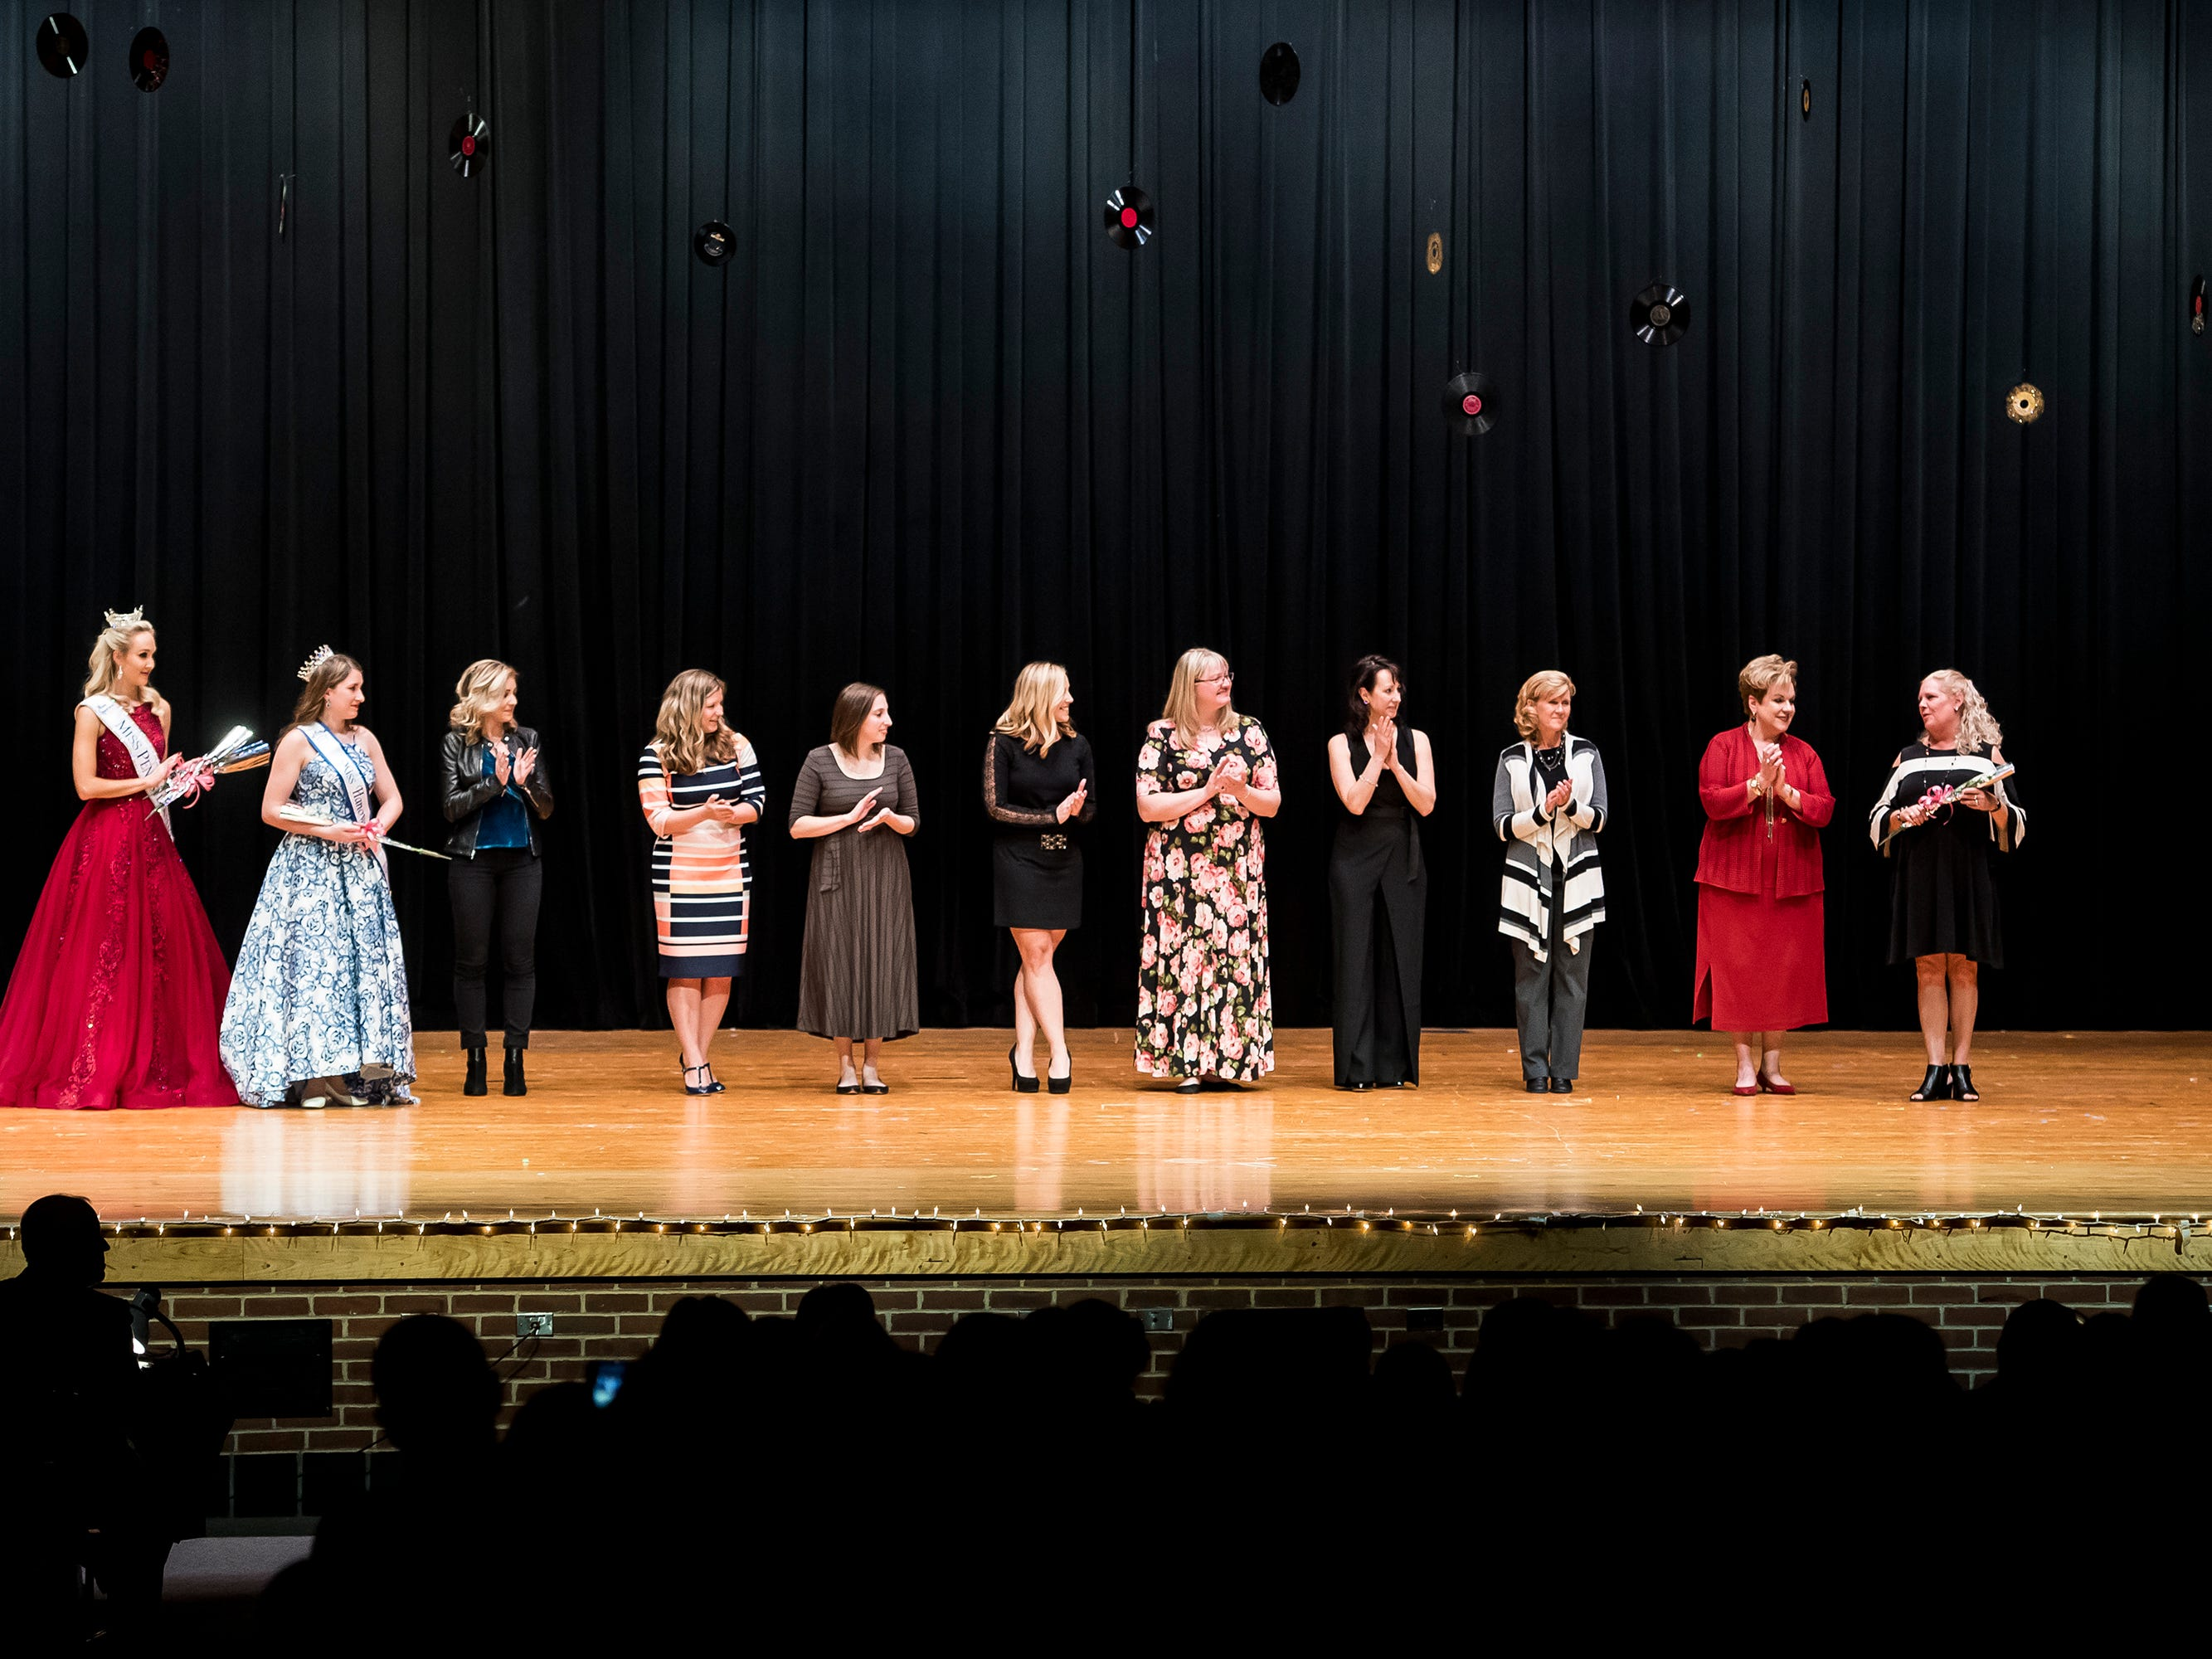 Former Miss Hanover Area pageant winners are honored during a special ceremony at the 50th annivesary pageant on Monday, October 22, 2018.